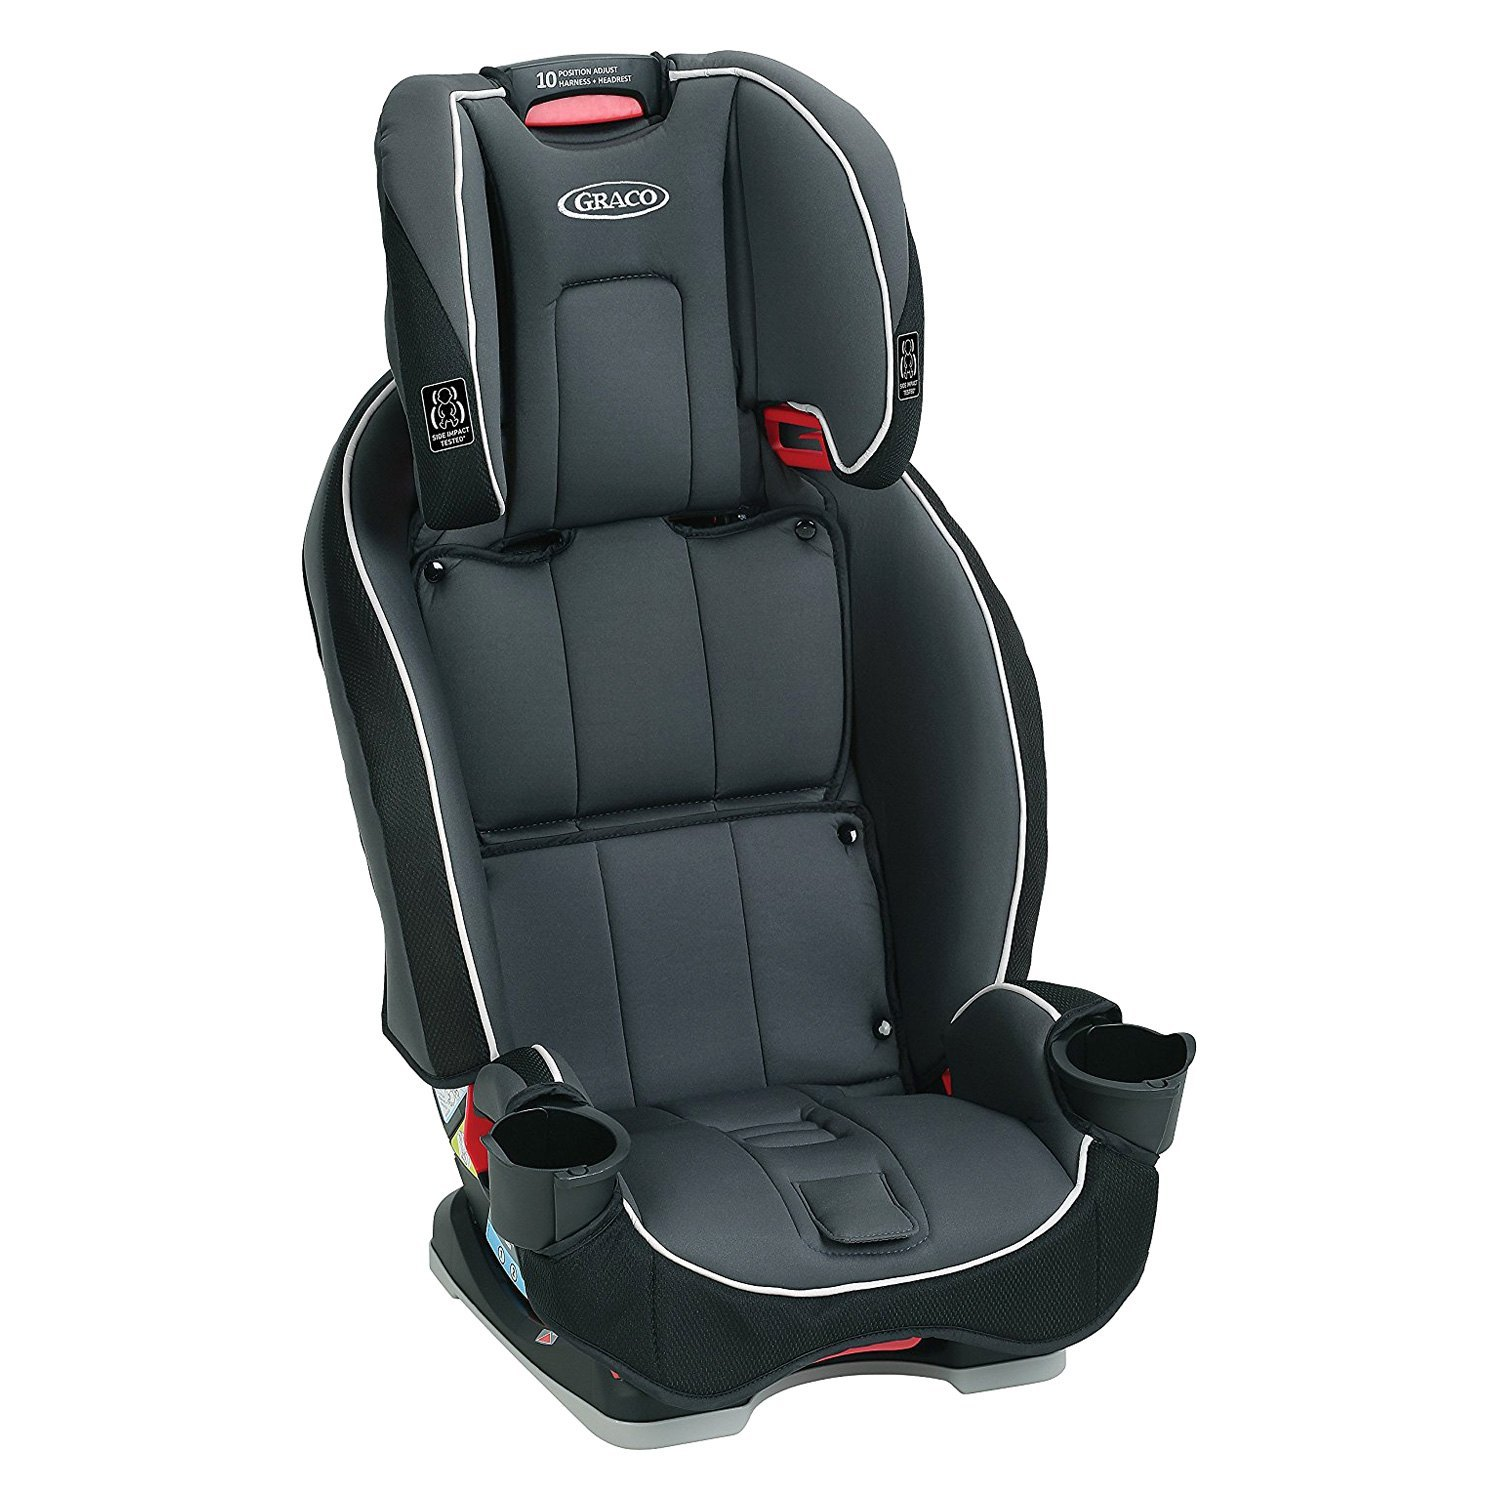 Graco Baby 2001876 SlimFit Darcie Style Space Saving All In One Car Seat